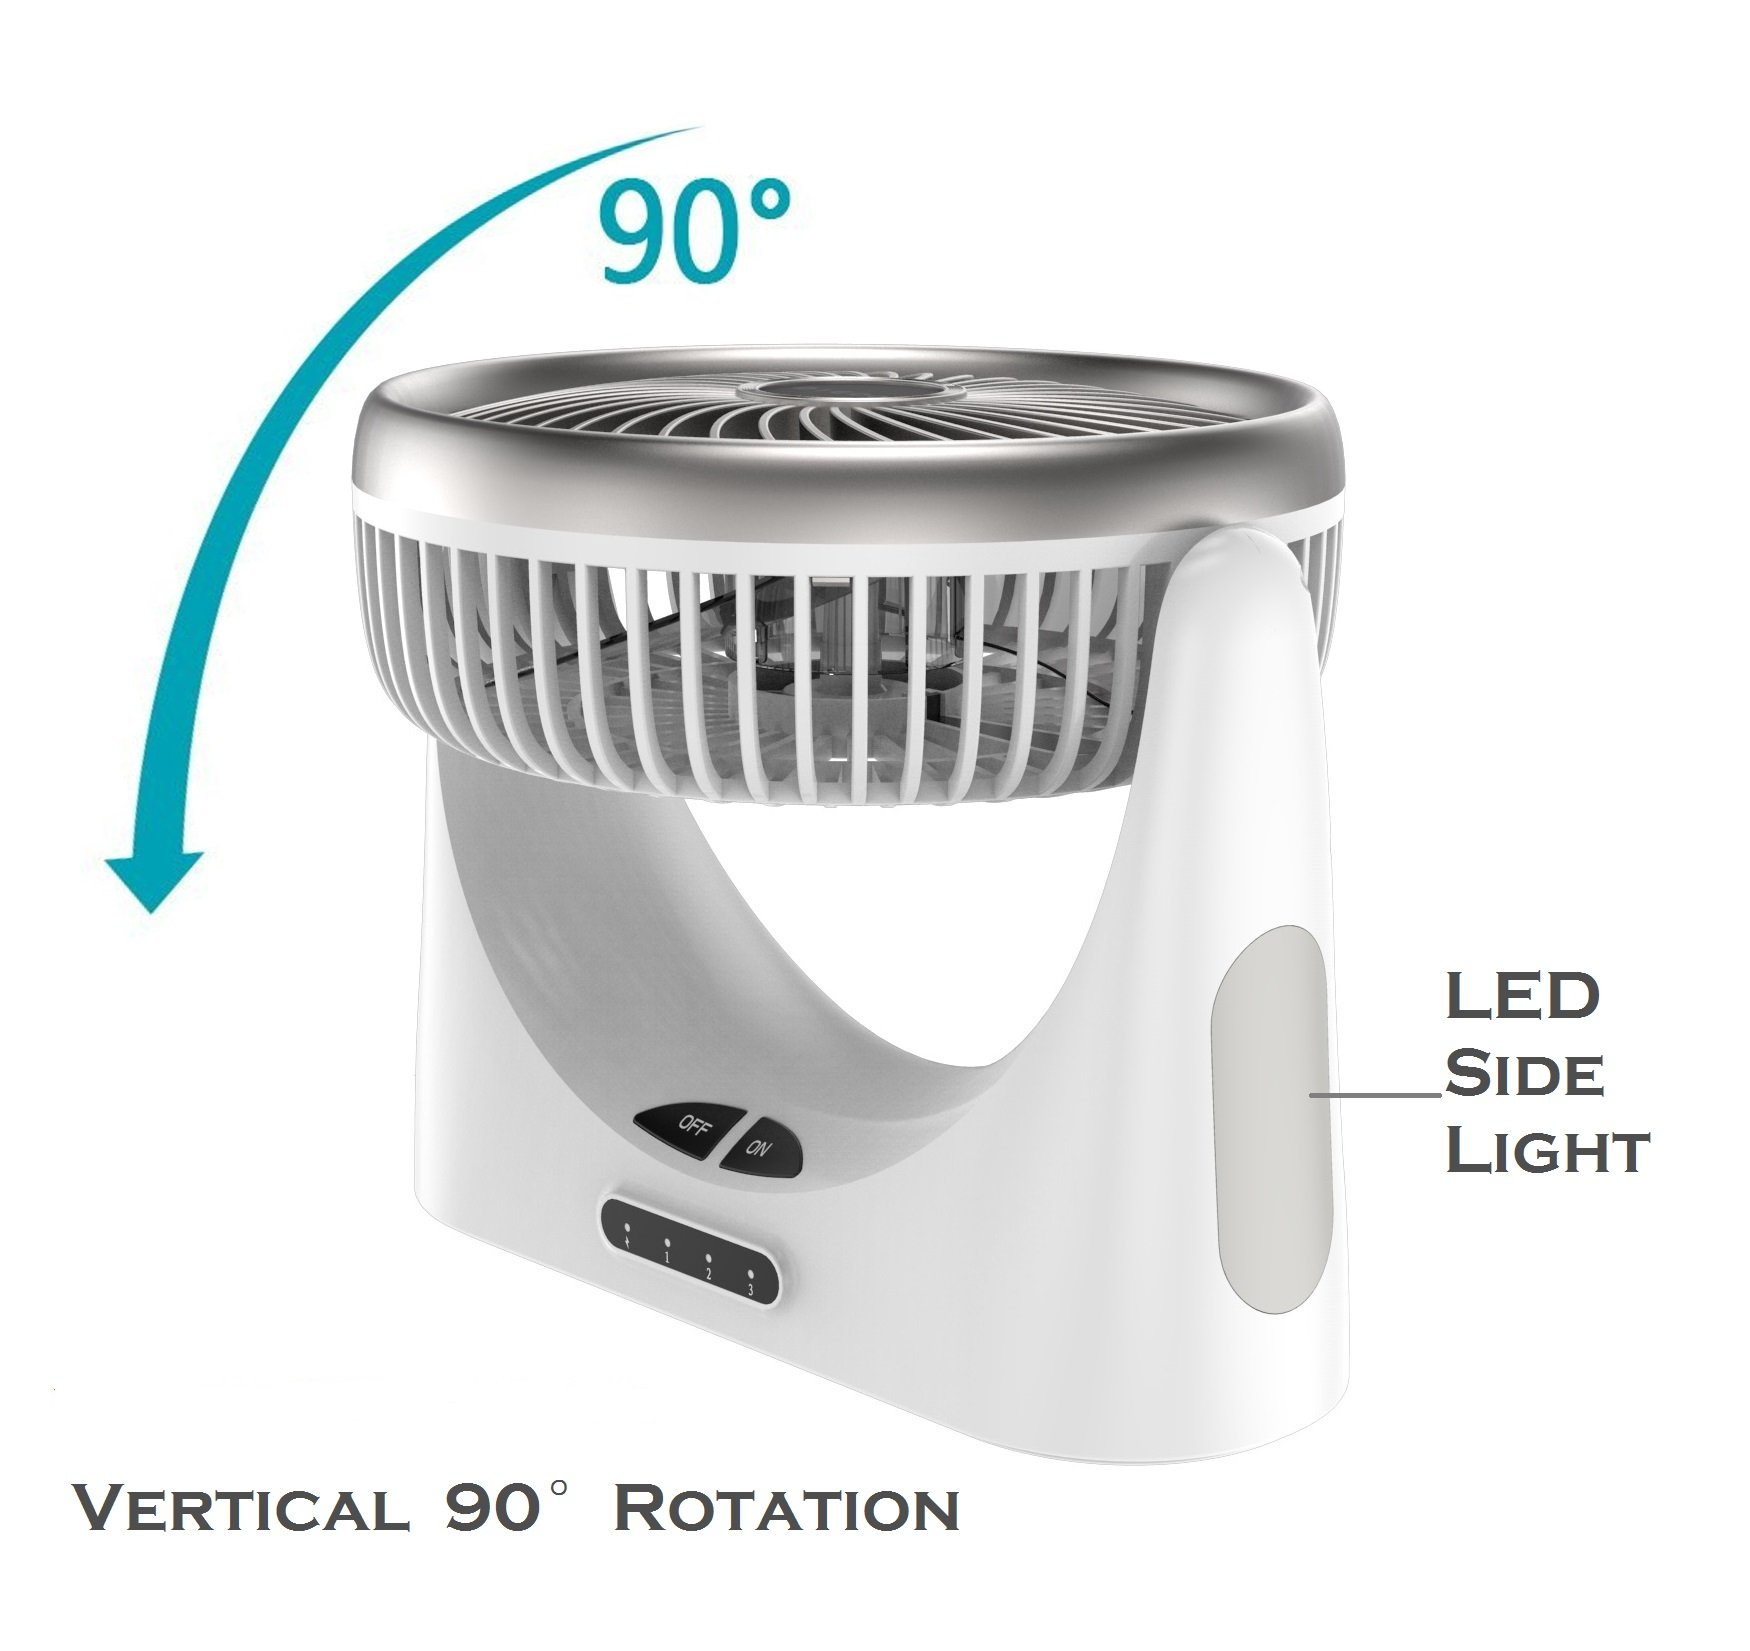 HCMAOE Mini USB Table Desk Personal Portable Air Circulator Fan 3 Speed, Lower Noise, Powered by USB or 4000mAh Rechargeable 18650 Battery with Power bank Function, Side LED Light for Office, (Silver) by HCMAOE (Image #2)